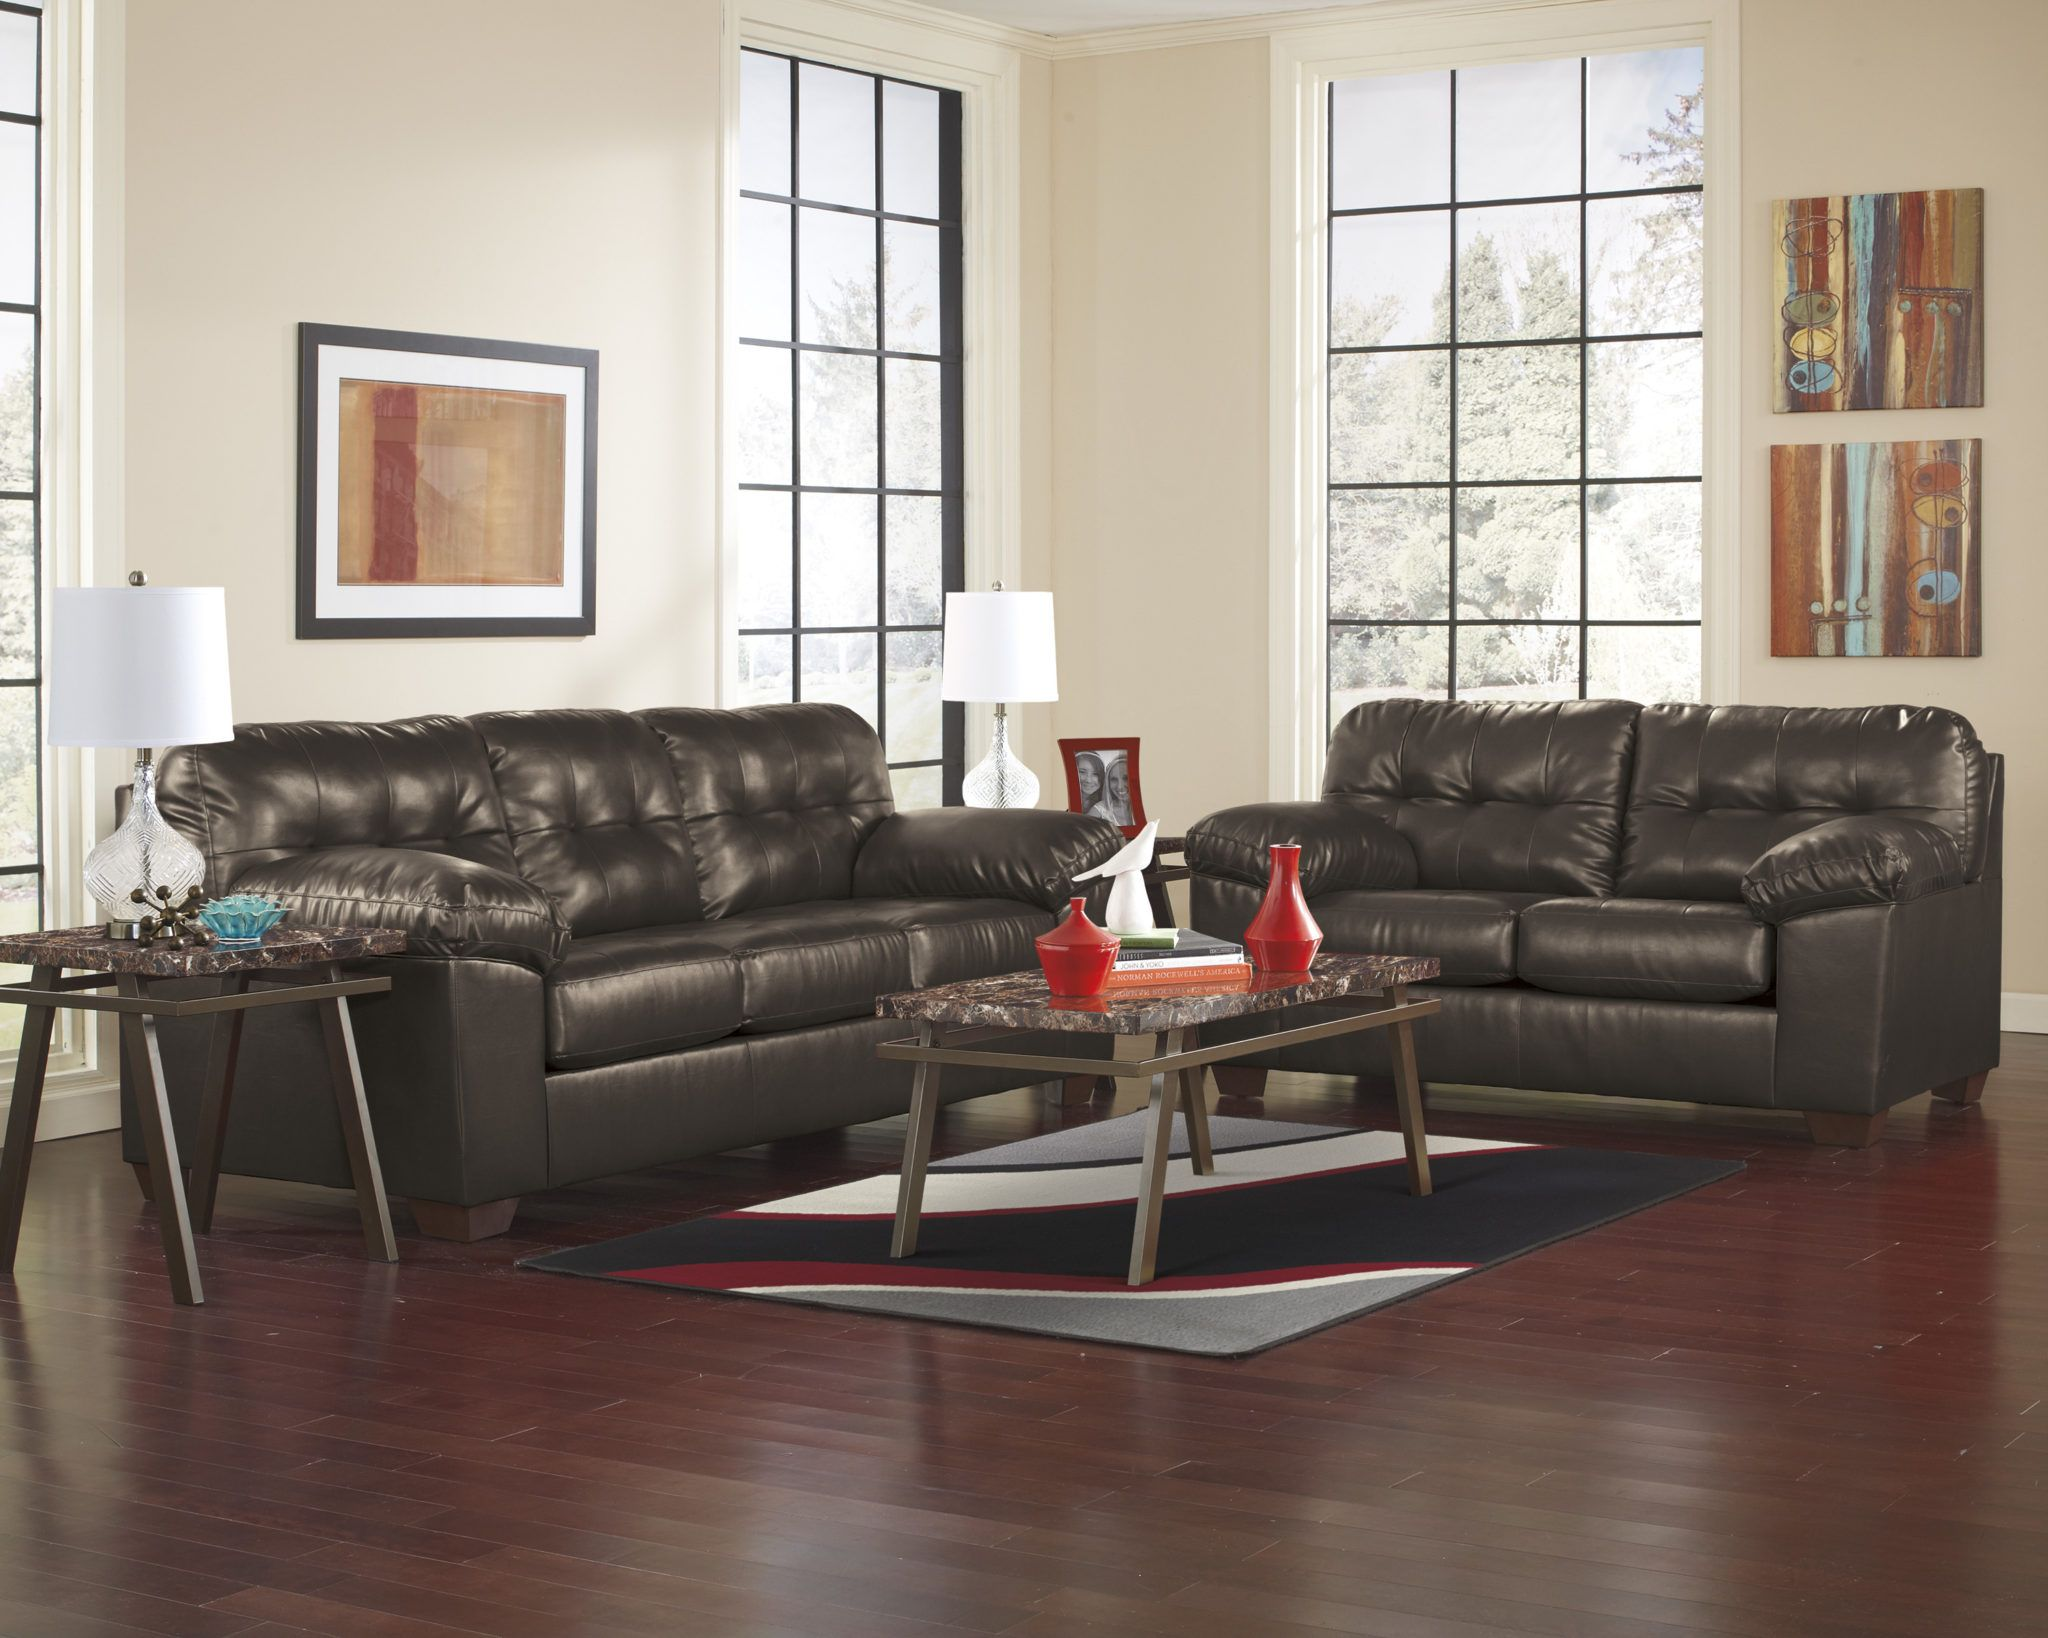 Alliston Sofa And Loveseat Set With Images Leather Sofa And Loveseat Living Room Sets Sofa And Loveseat Set